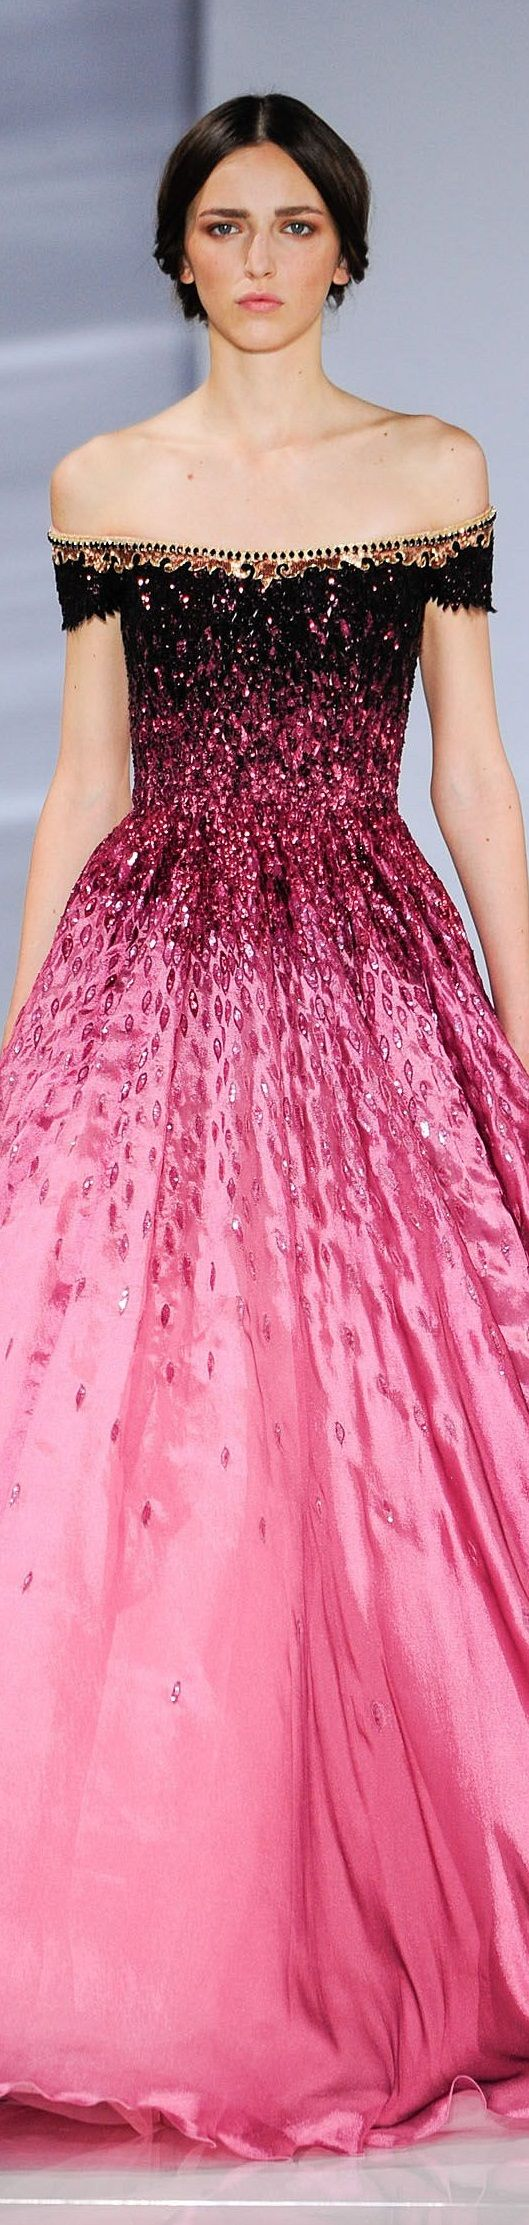 GEORGES HOBEIKA fall 2015 couture